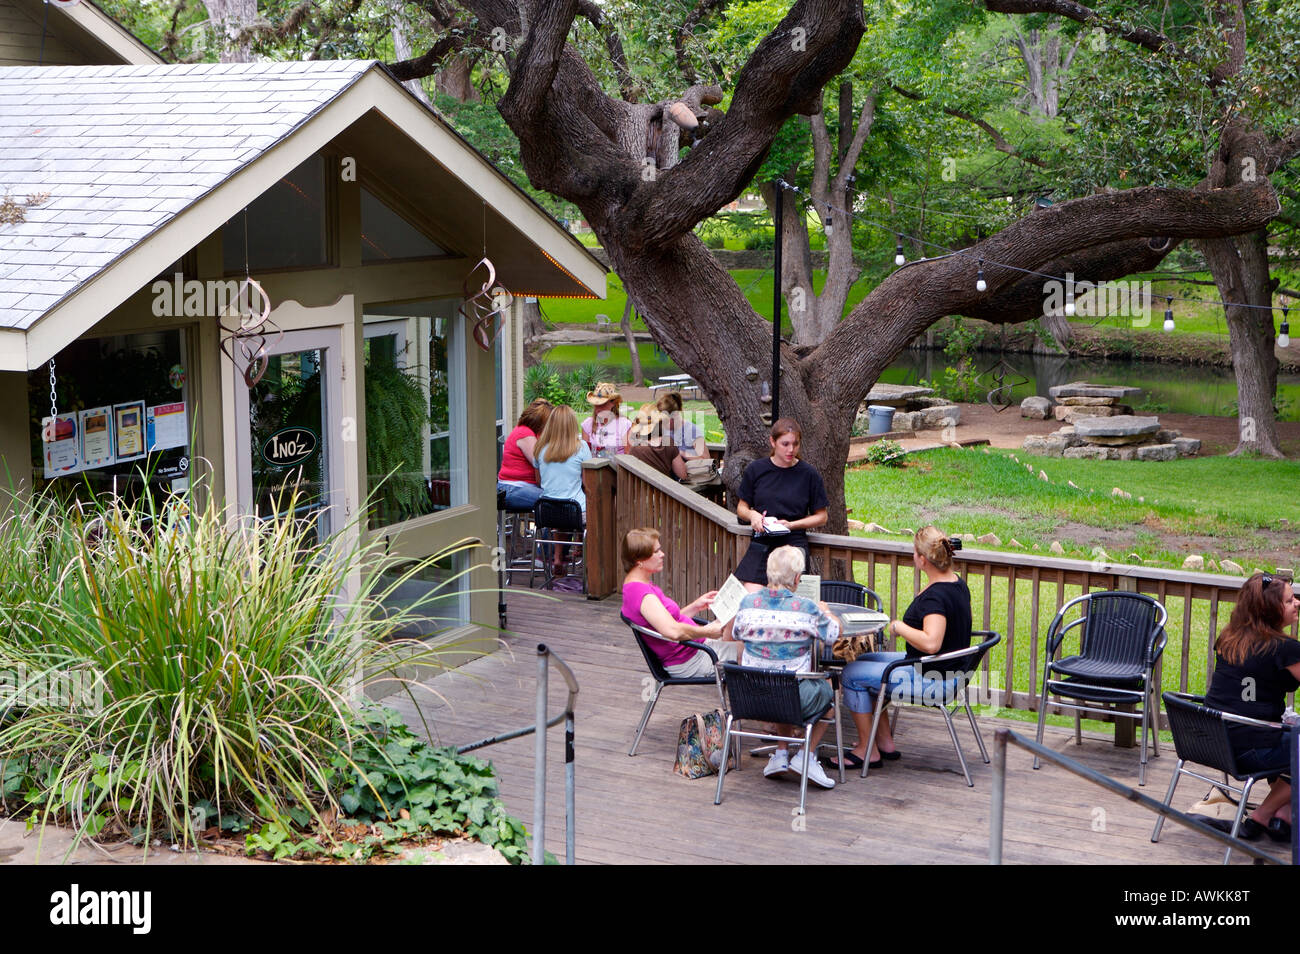 Ino Z Restaurant In Wimberley Texas Along The Banks Of